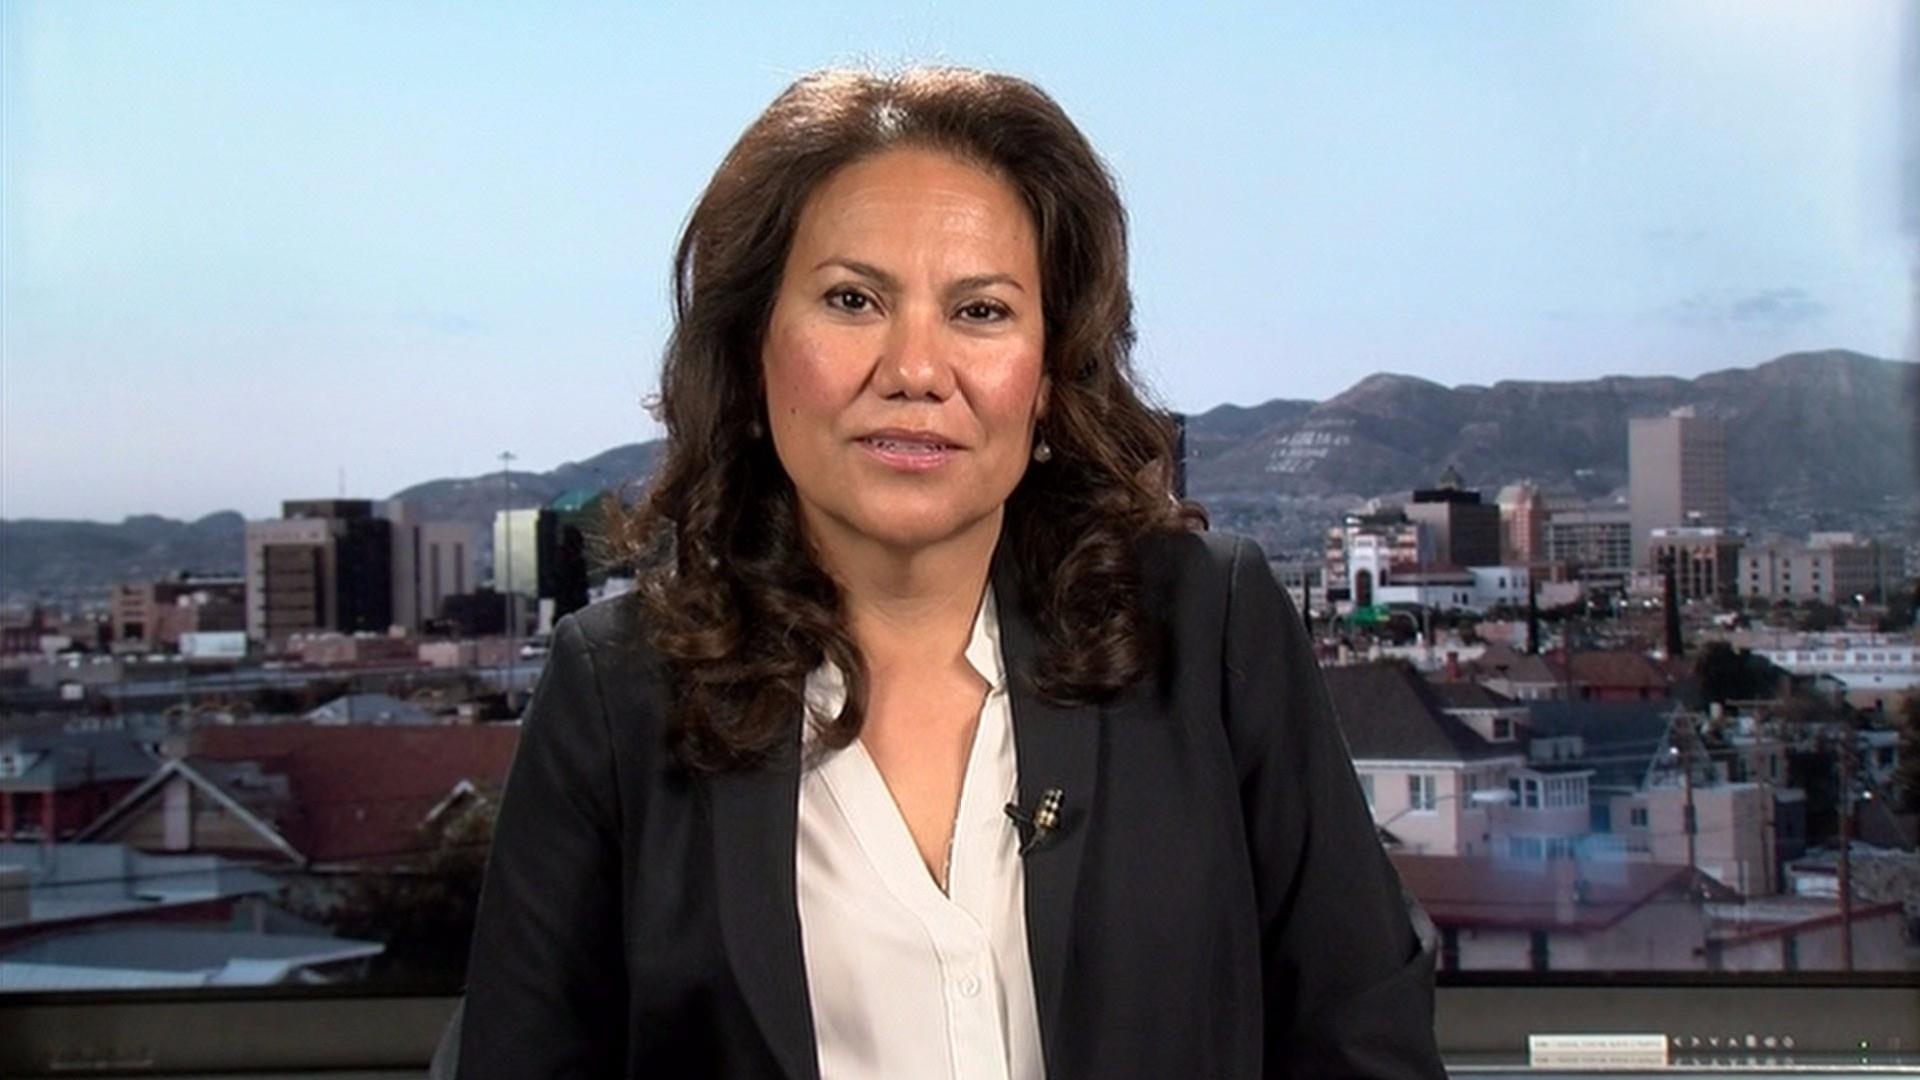 Escobar on Dem majority: 'I think a woman is the right person to lead'